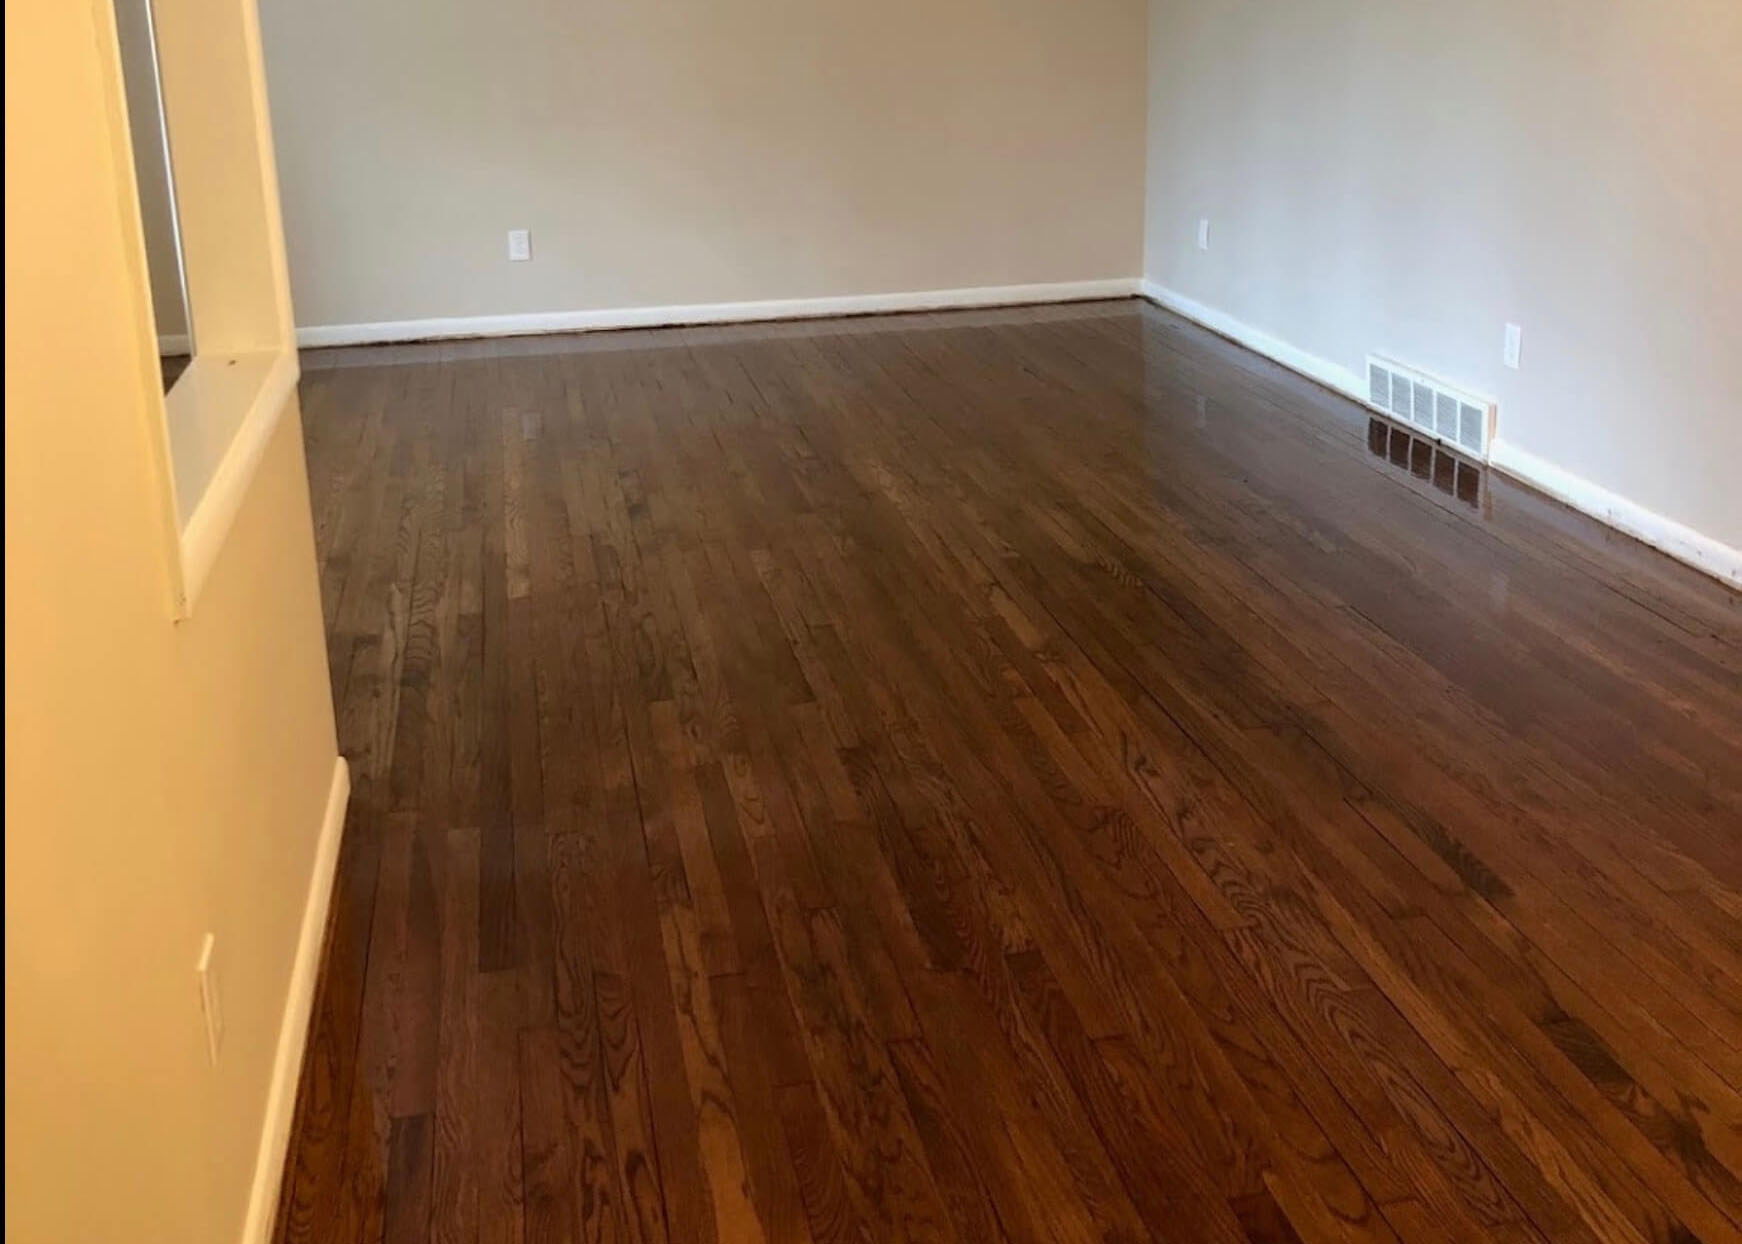 resurfaced hardwood floor in atlanta, ga